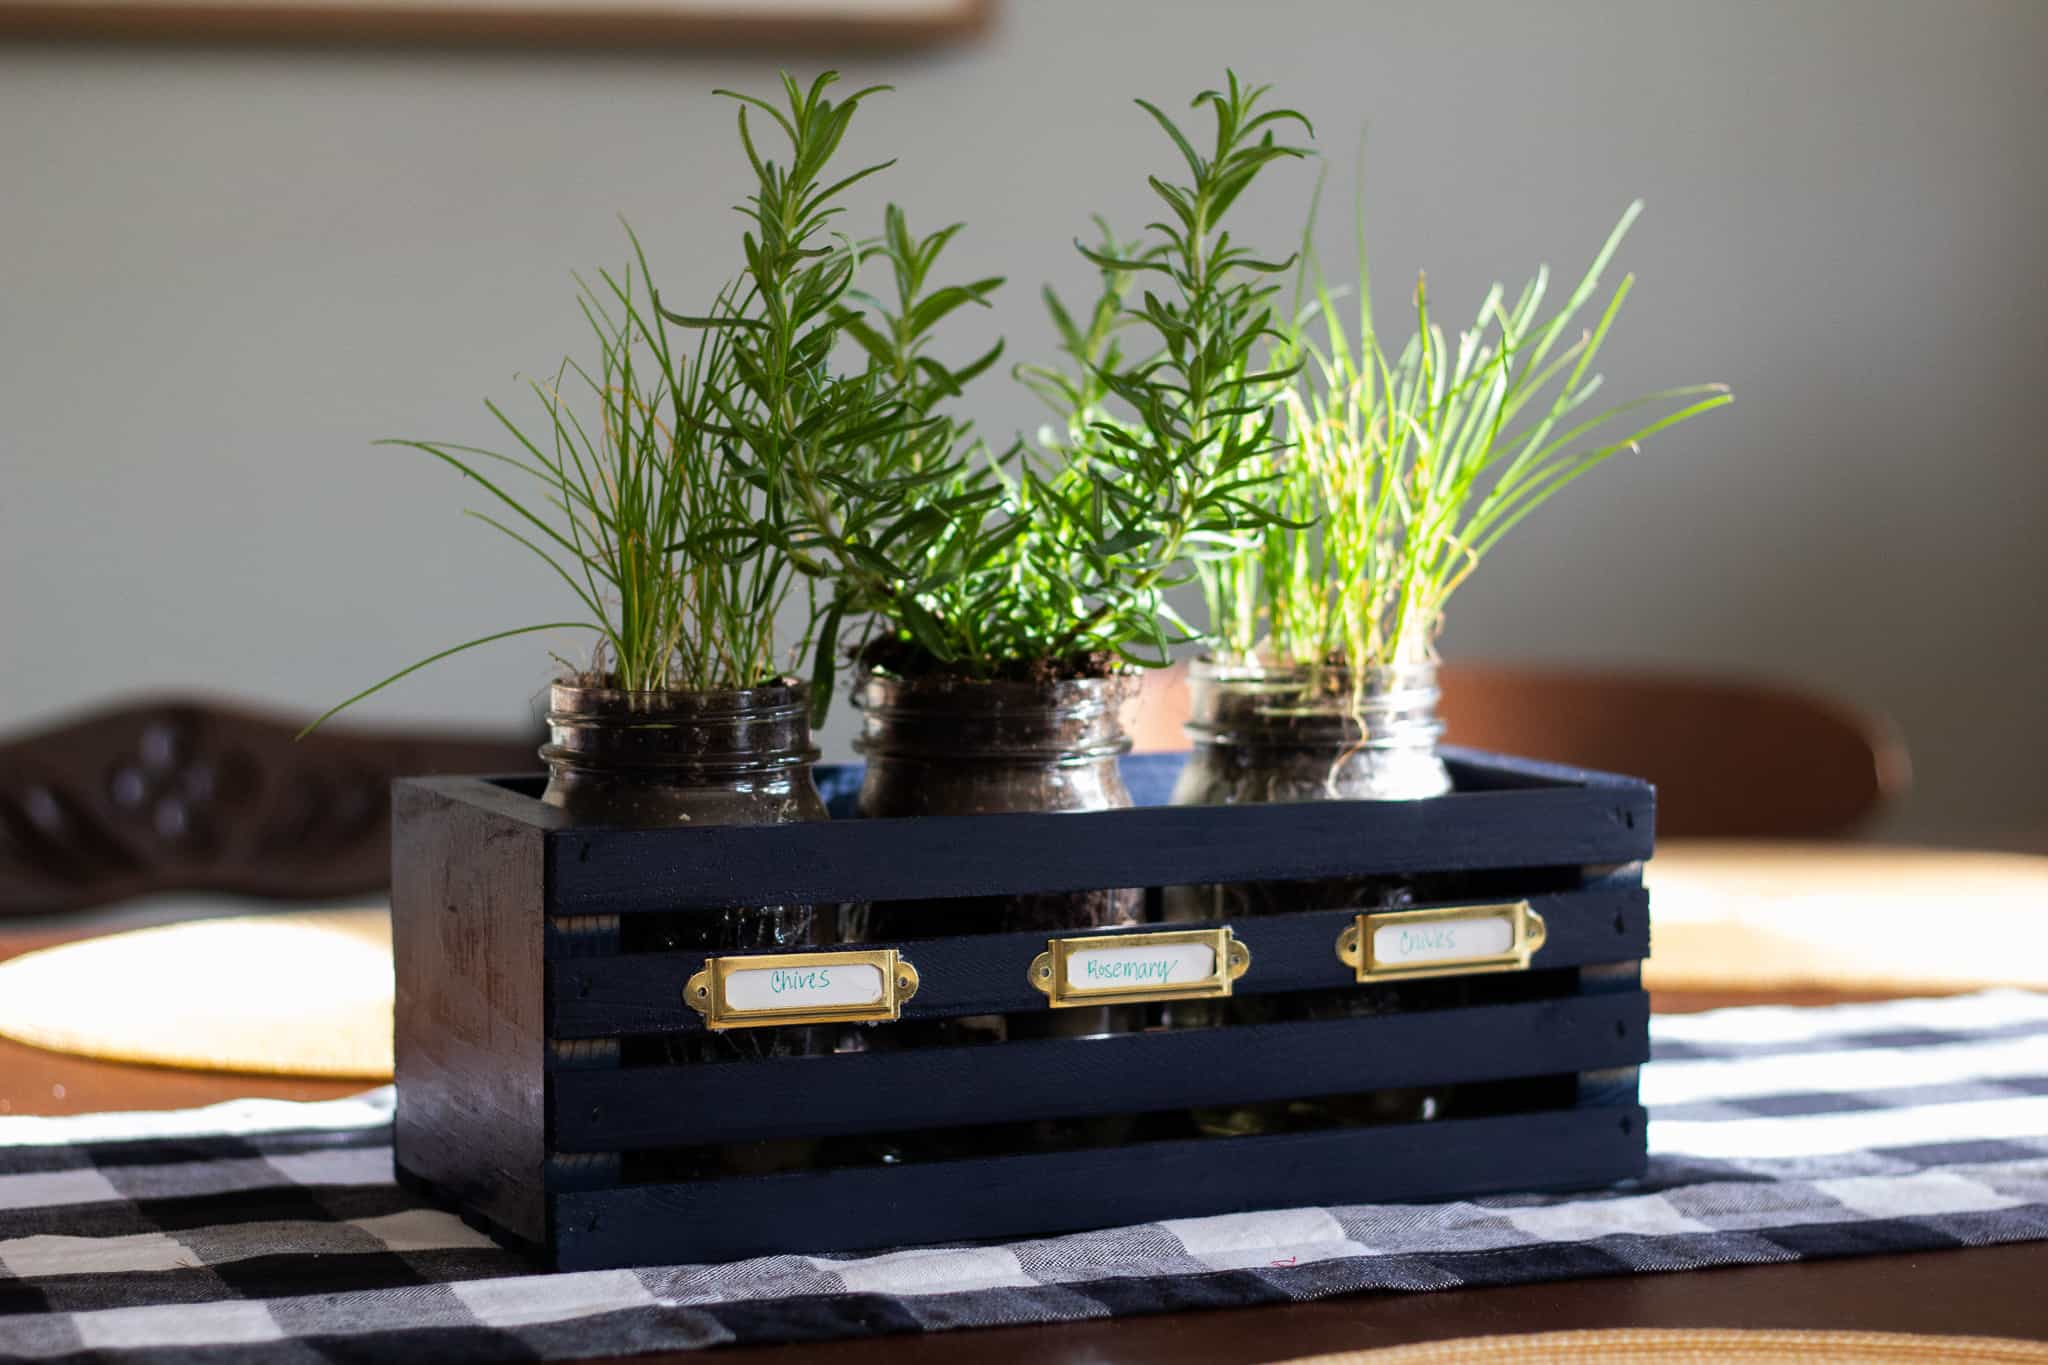 Mason jar herb planter in navy blue crate on dining table with buffalo check runner